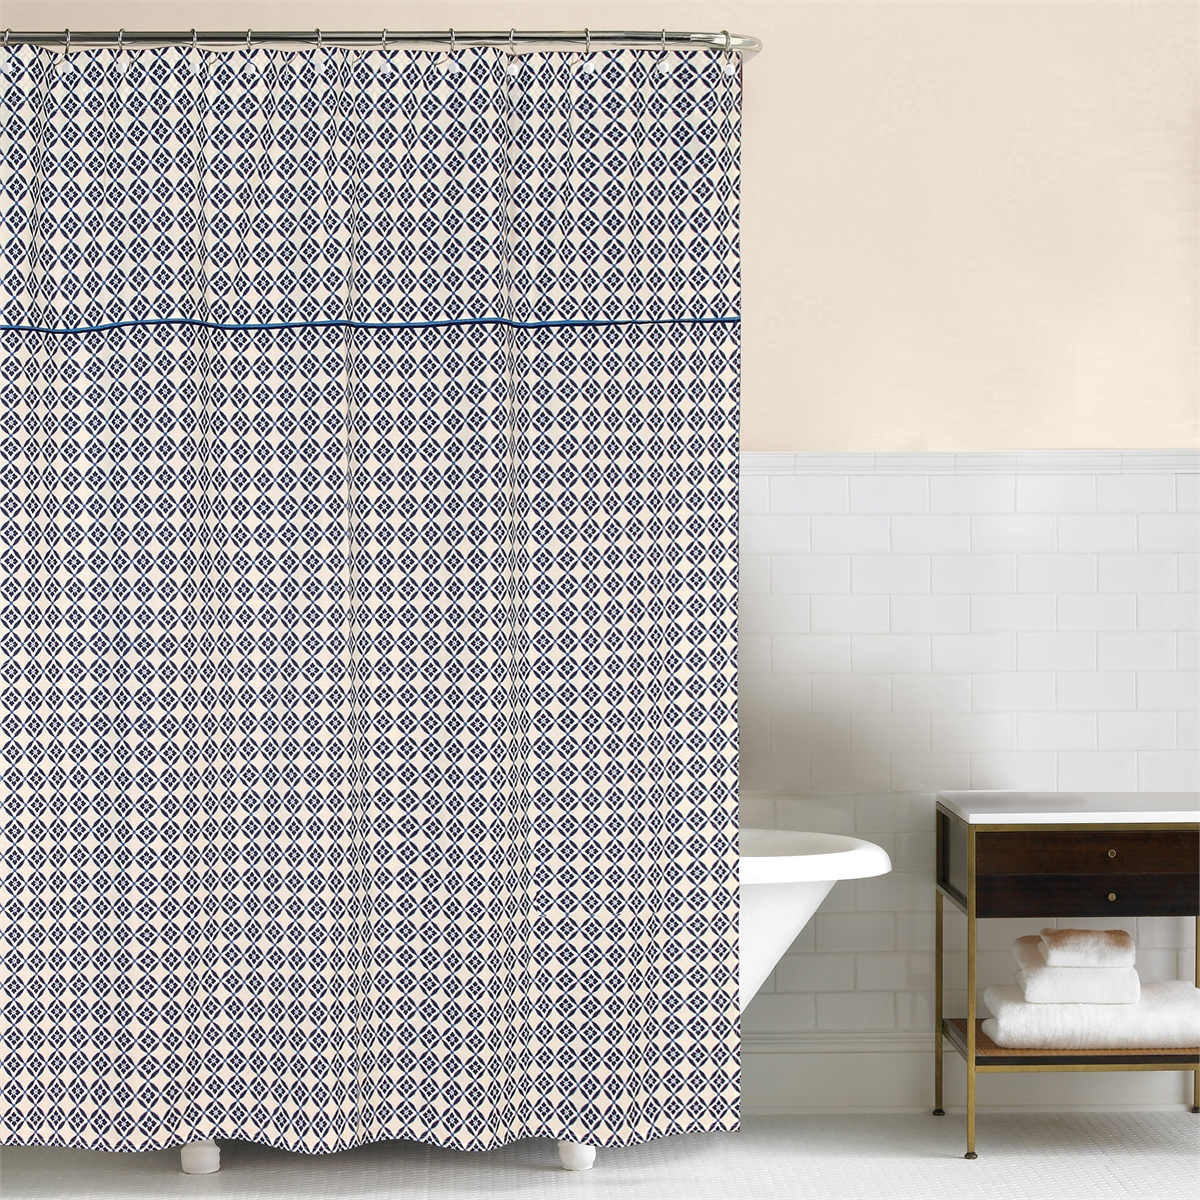 Stafford Shower Curtain | C&F Home